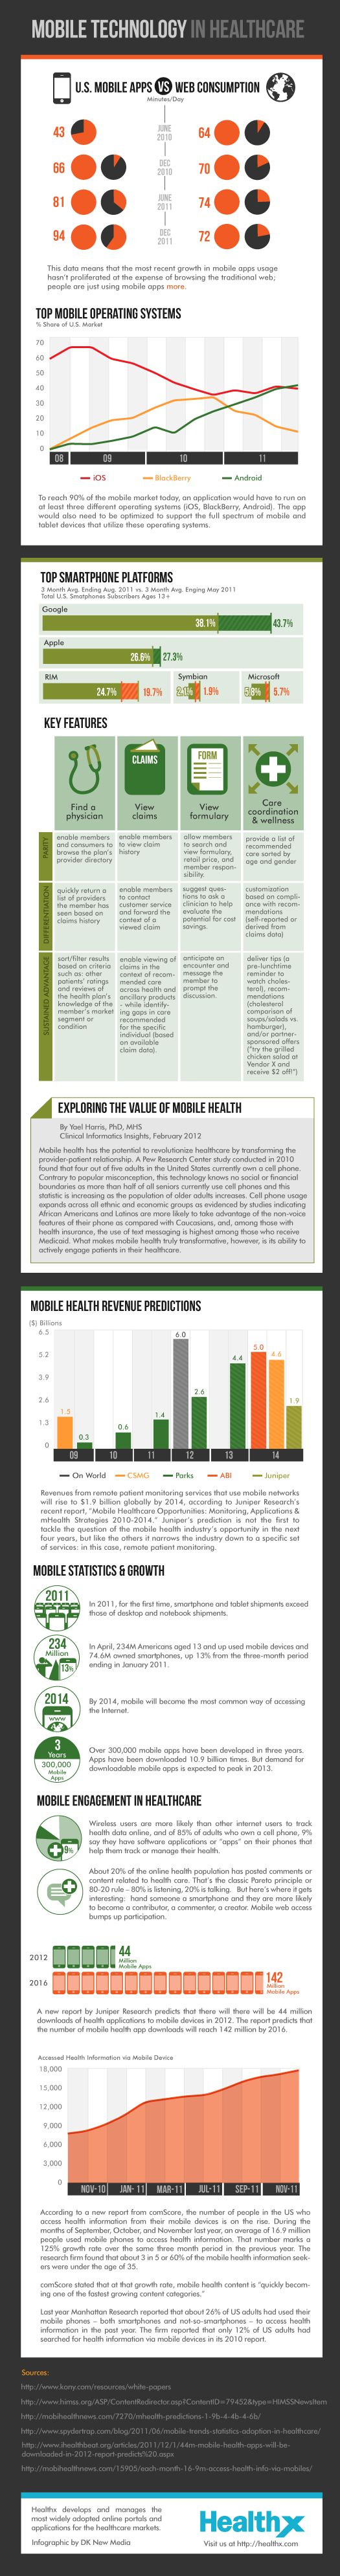 [Infographic] #Mobile Technology in Healthcare